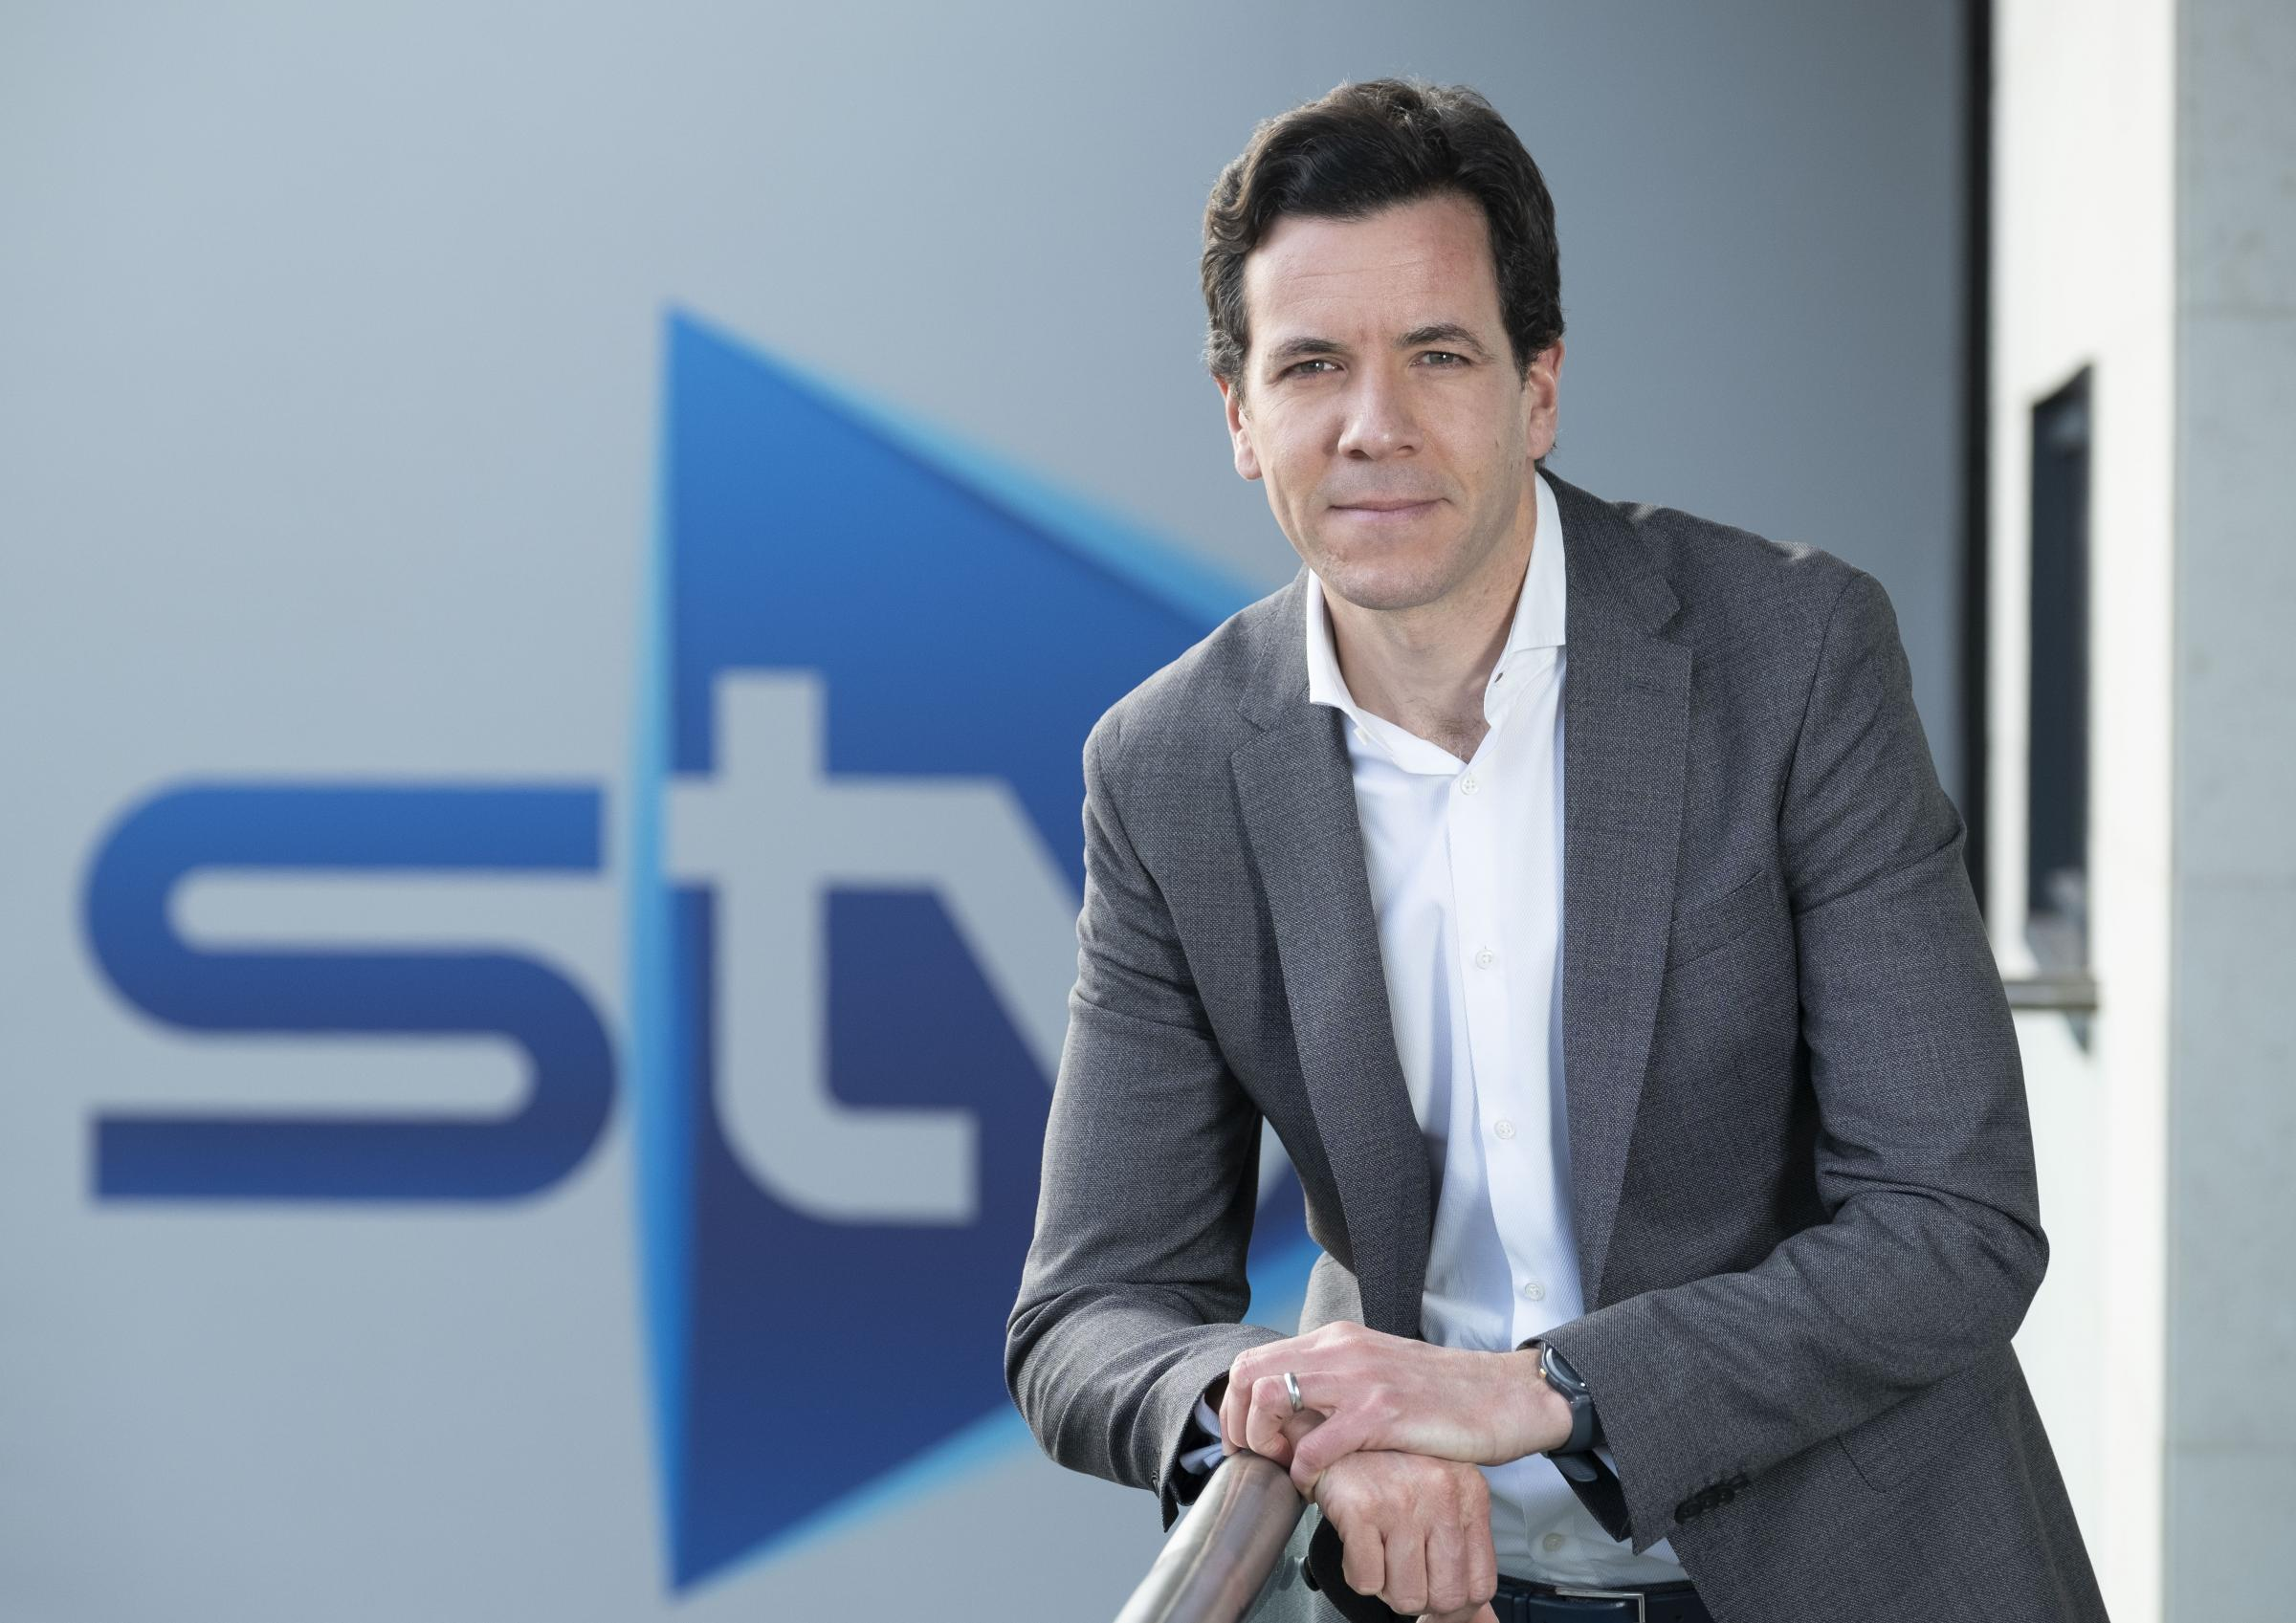 Broadcaster STV lifts revenue forecasts